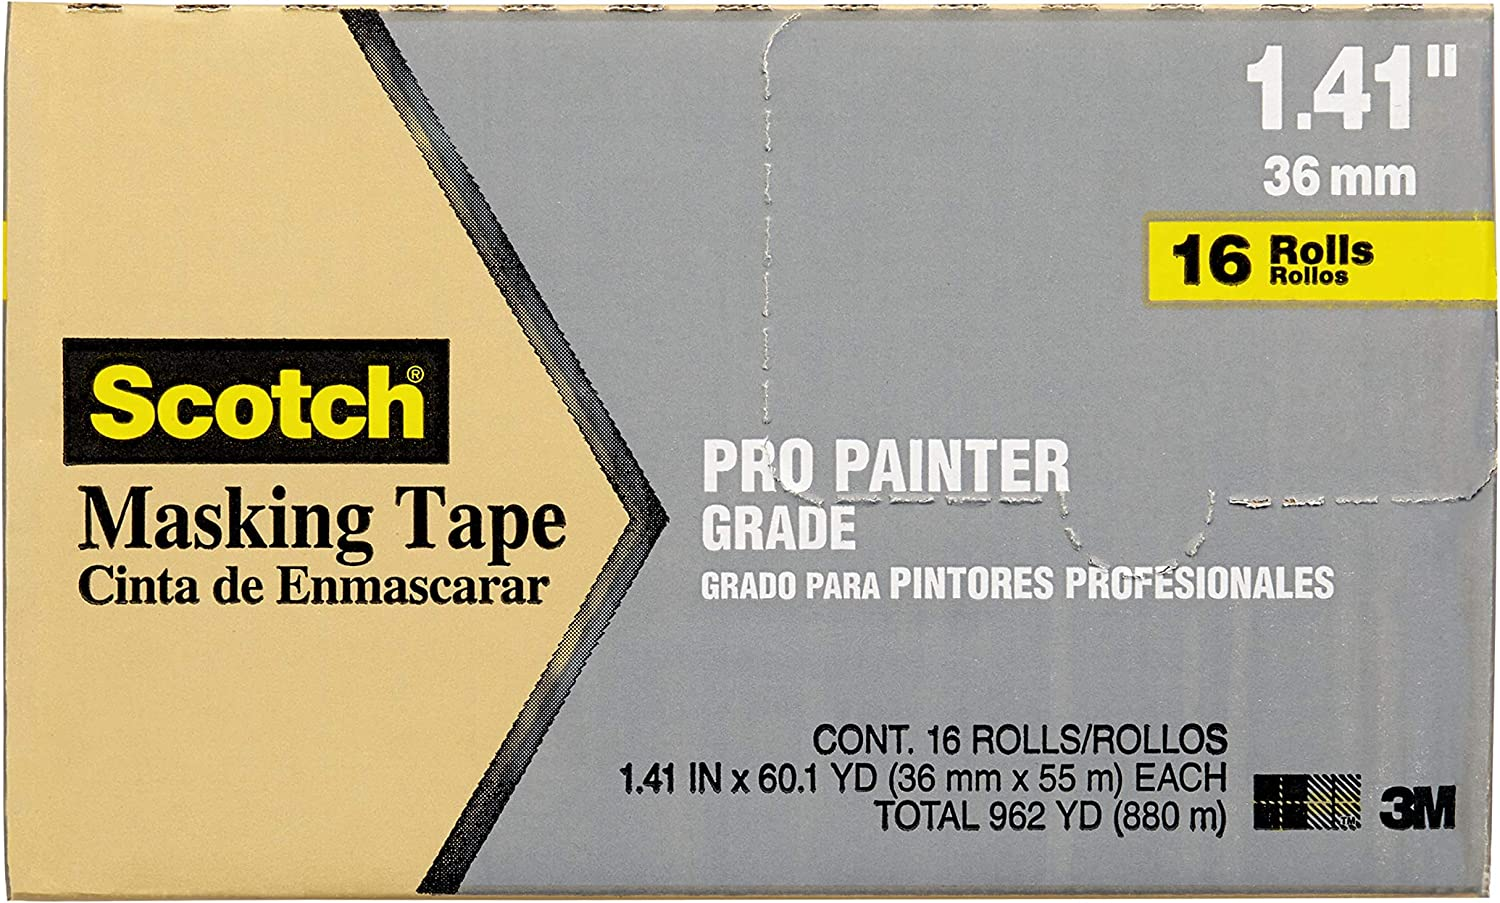 Scotch Contractor Grade Masking San Import Diego Mall Tape yards 60.1 by 1.41 inches